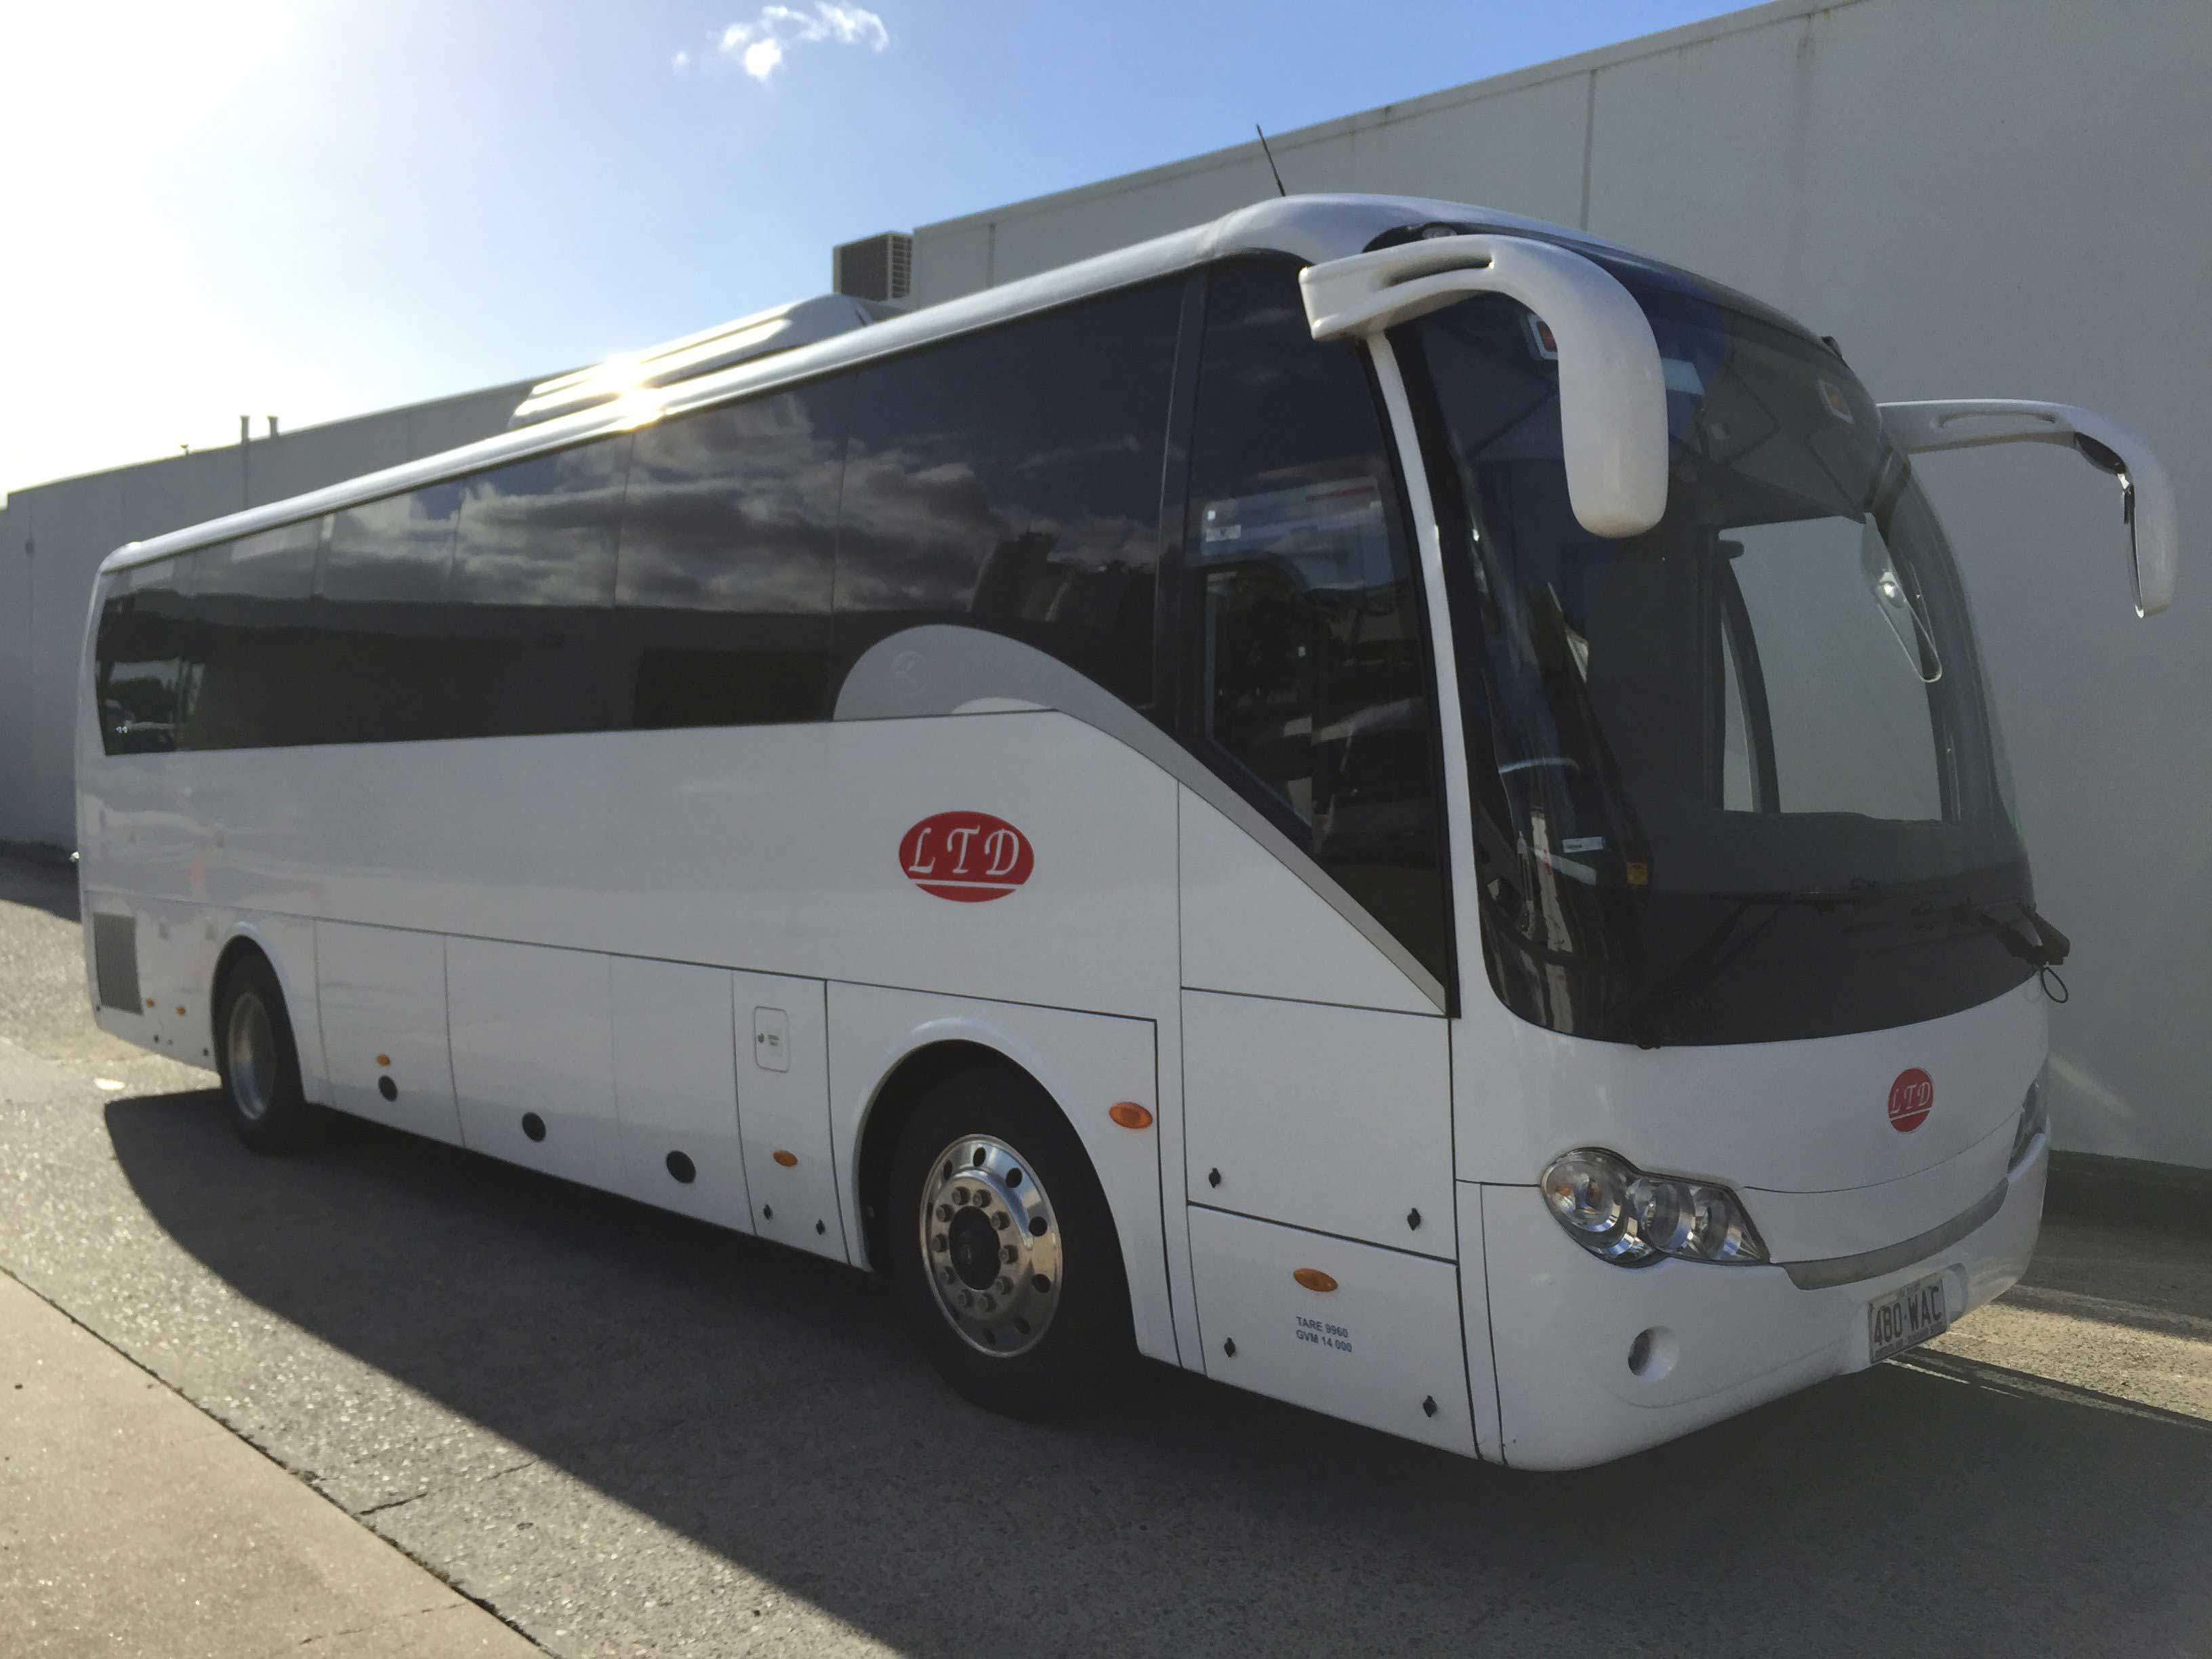 Coach bus rental available in LTD Bus and Truck Rentals Pty Ltd located in Gold Coast